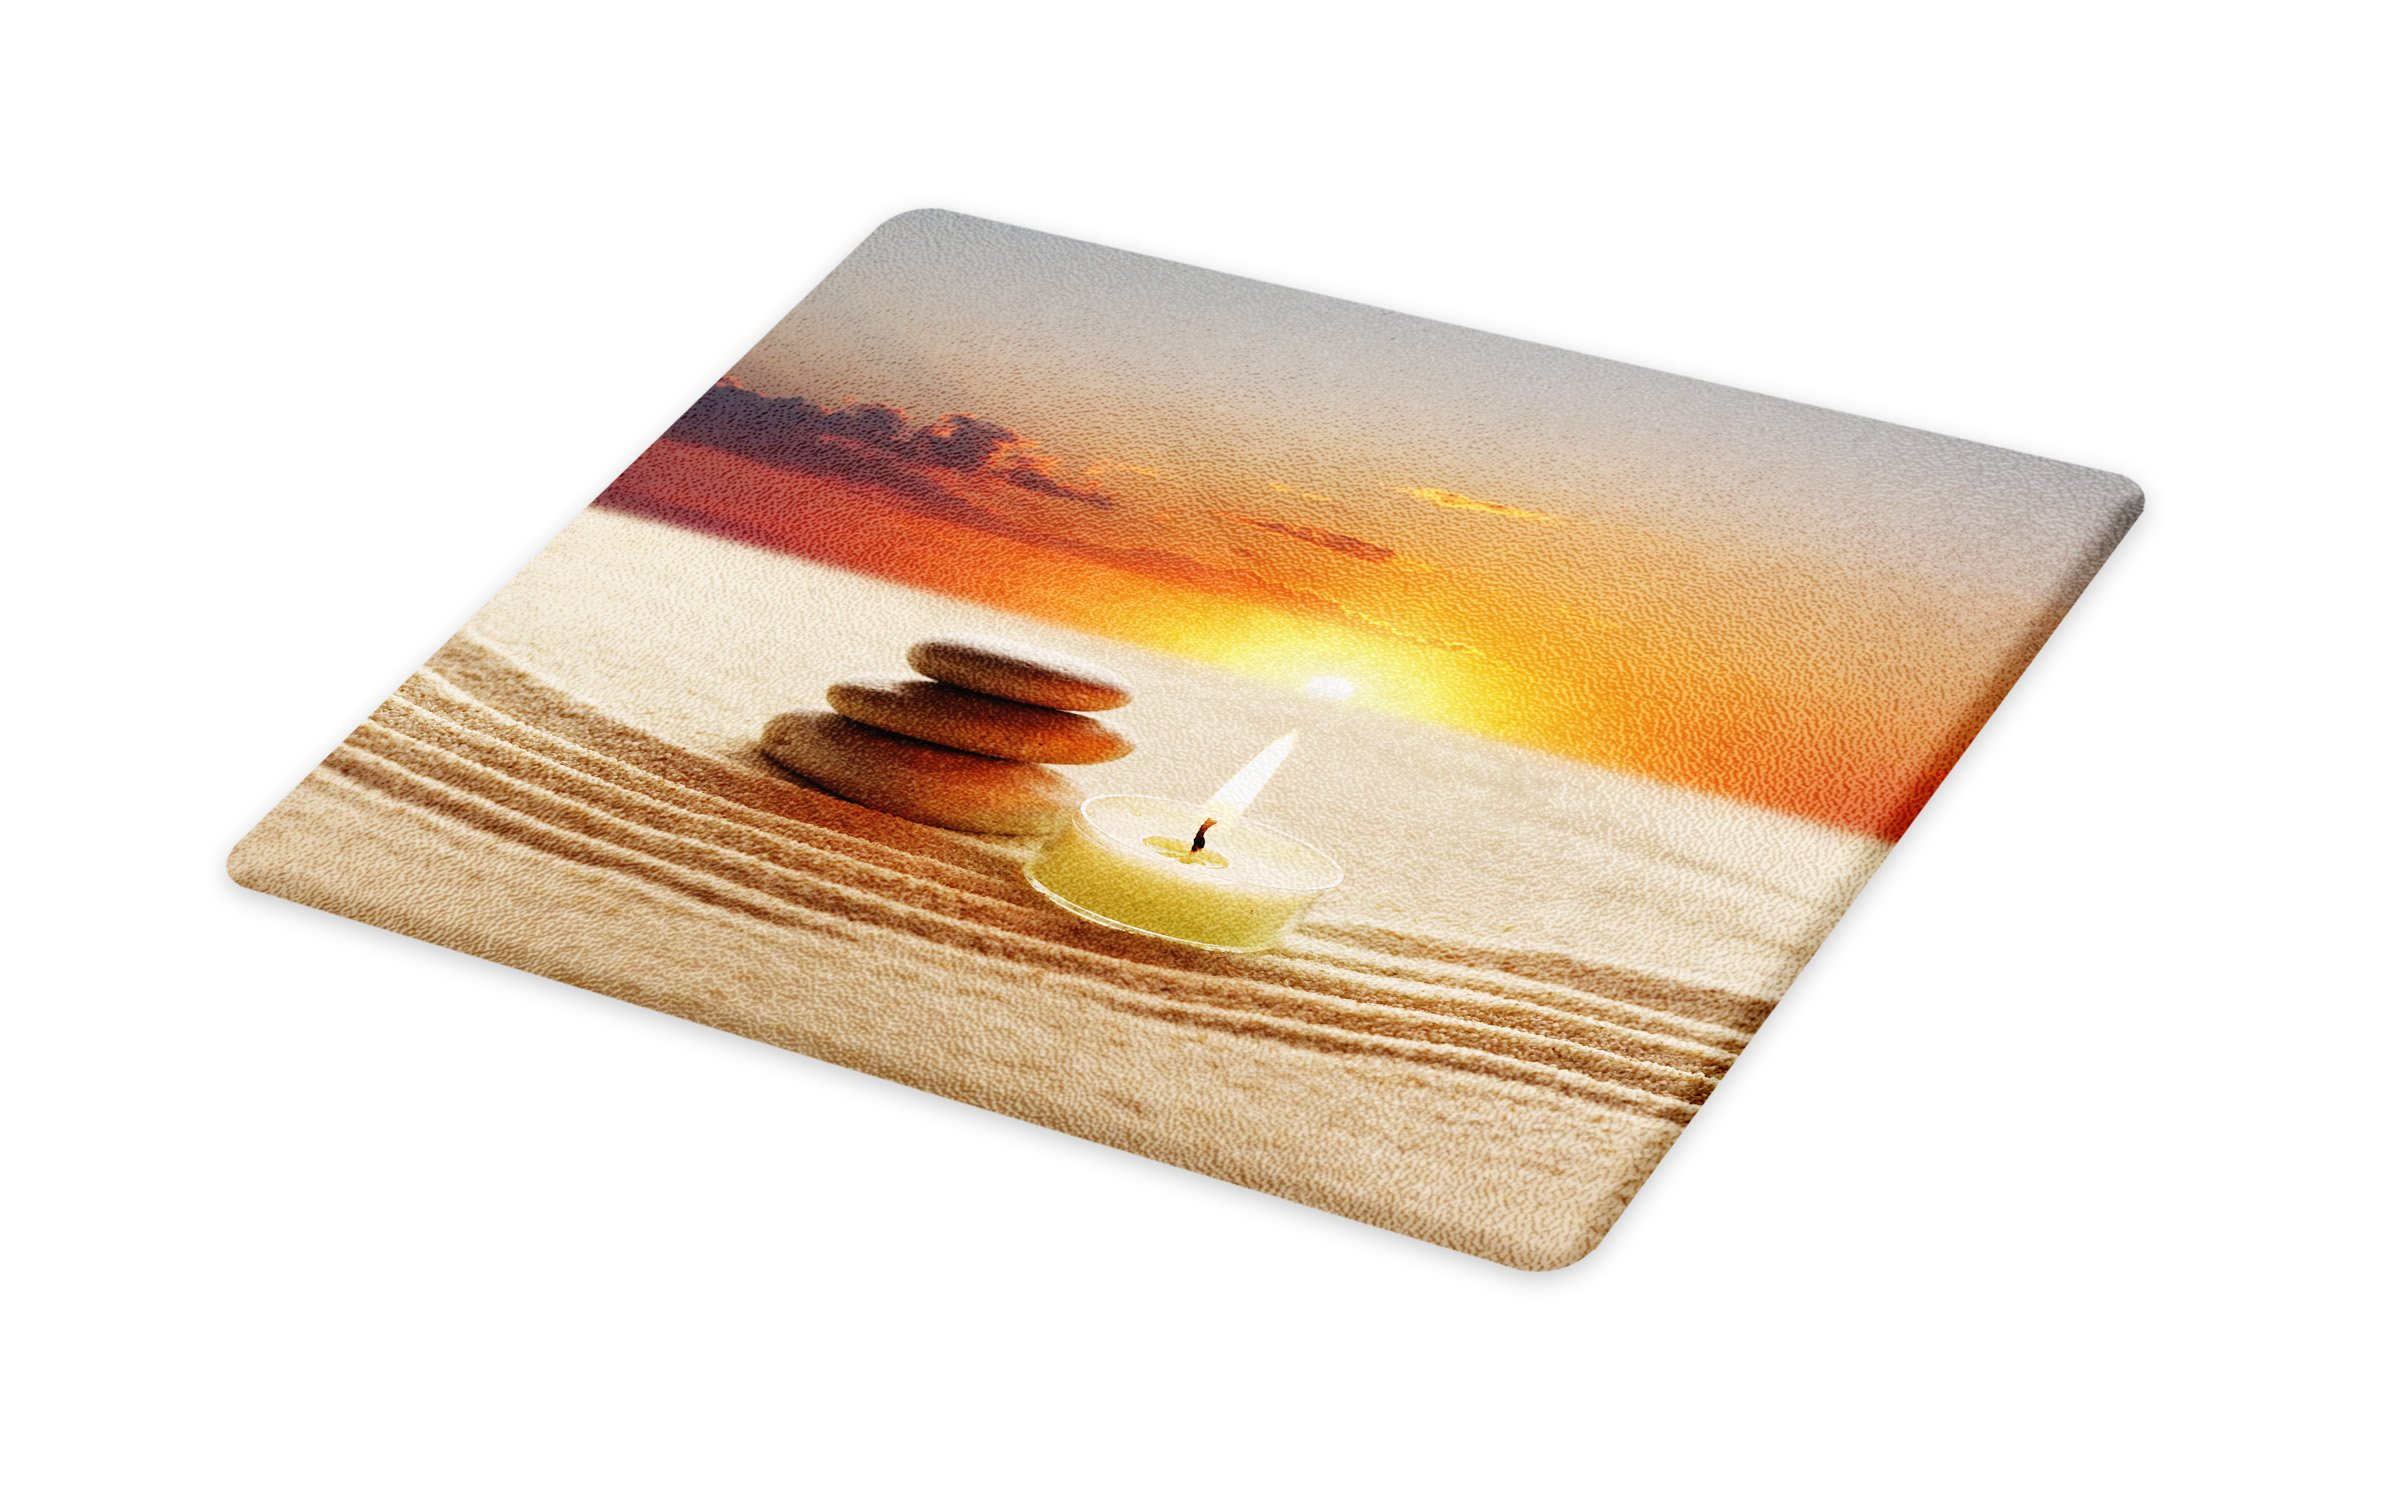 Lunarable Spa Cutting Board, Little Candle with Three Stones Middle of Sand with Sunset Serene Landscape, Decorative Tempered Glass Cutting and Serving Board, Small Size, White Brown and Orange